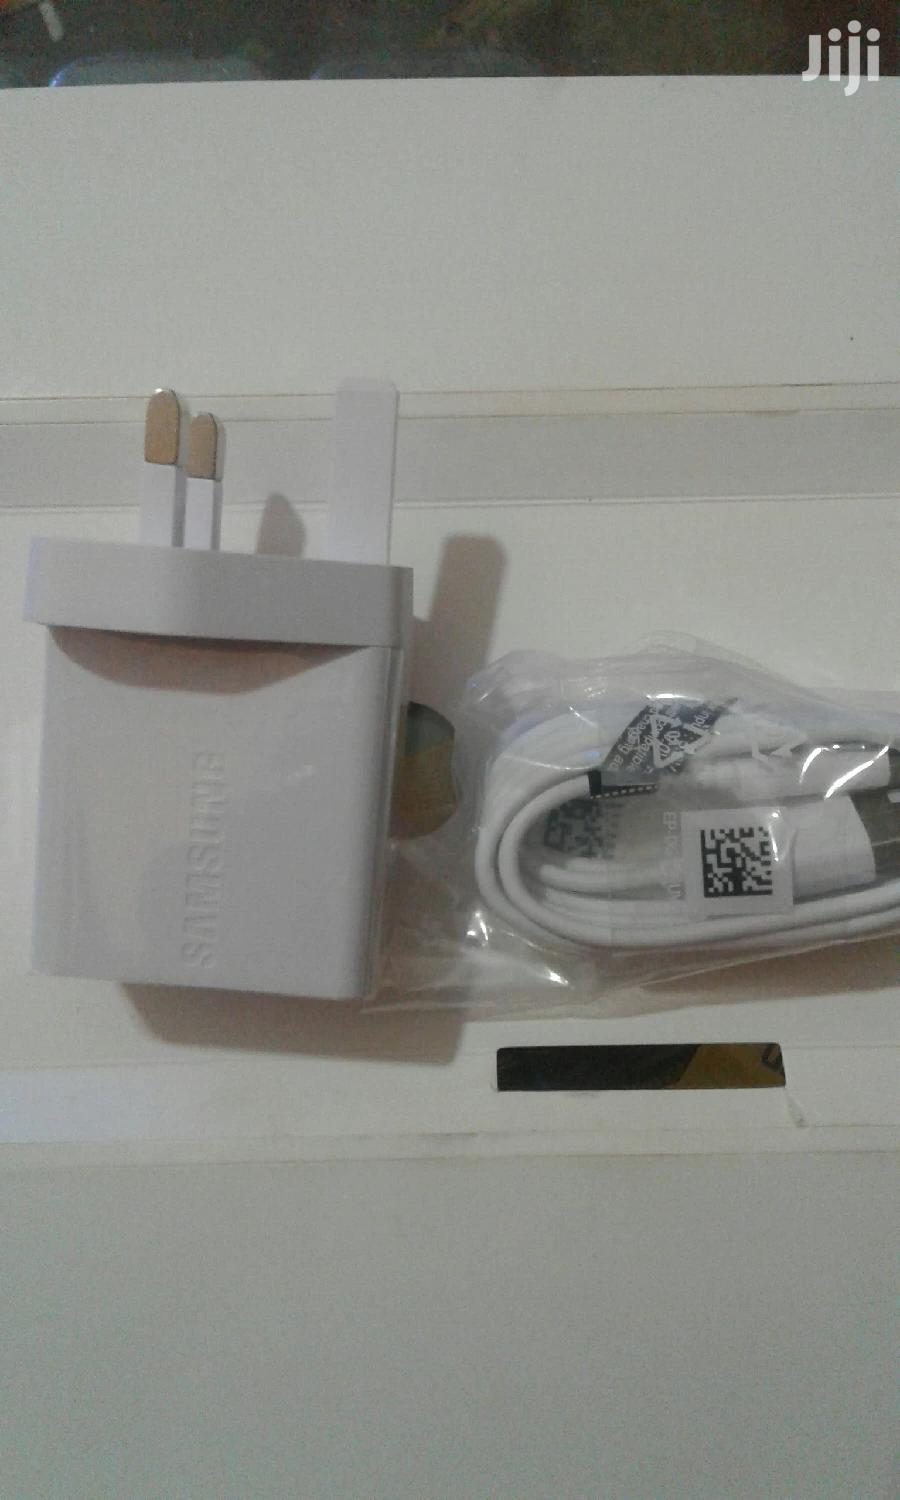 Galaxy Note 3 | Accessories for Mobile Phones & Tablets for sale in Kampala, Central Region, Uganda